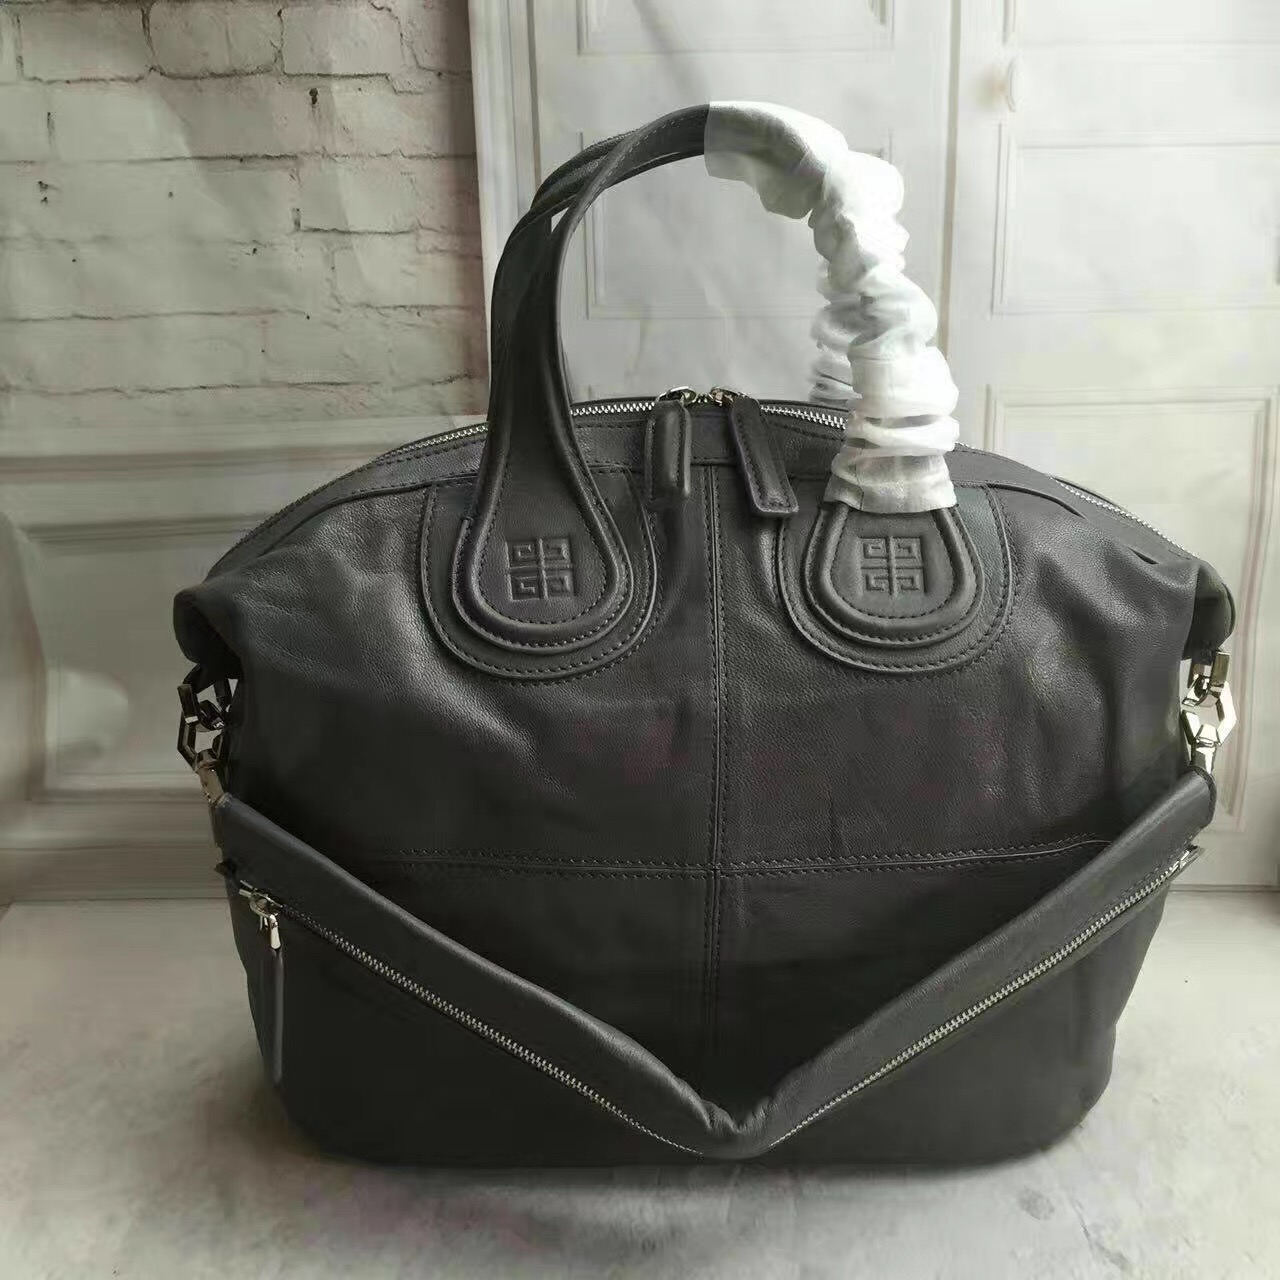 3a0e46f6de The Best Givenchy Nightingale Replica Handbags Online Store